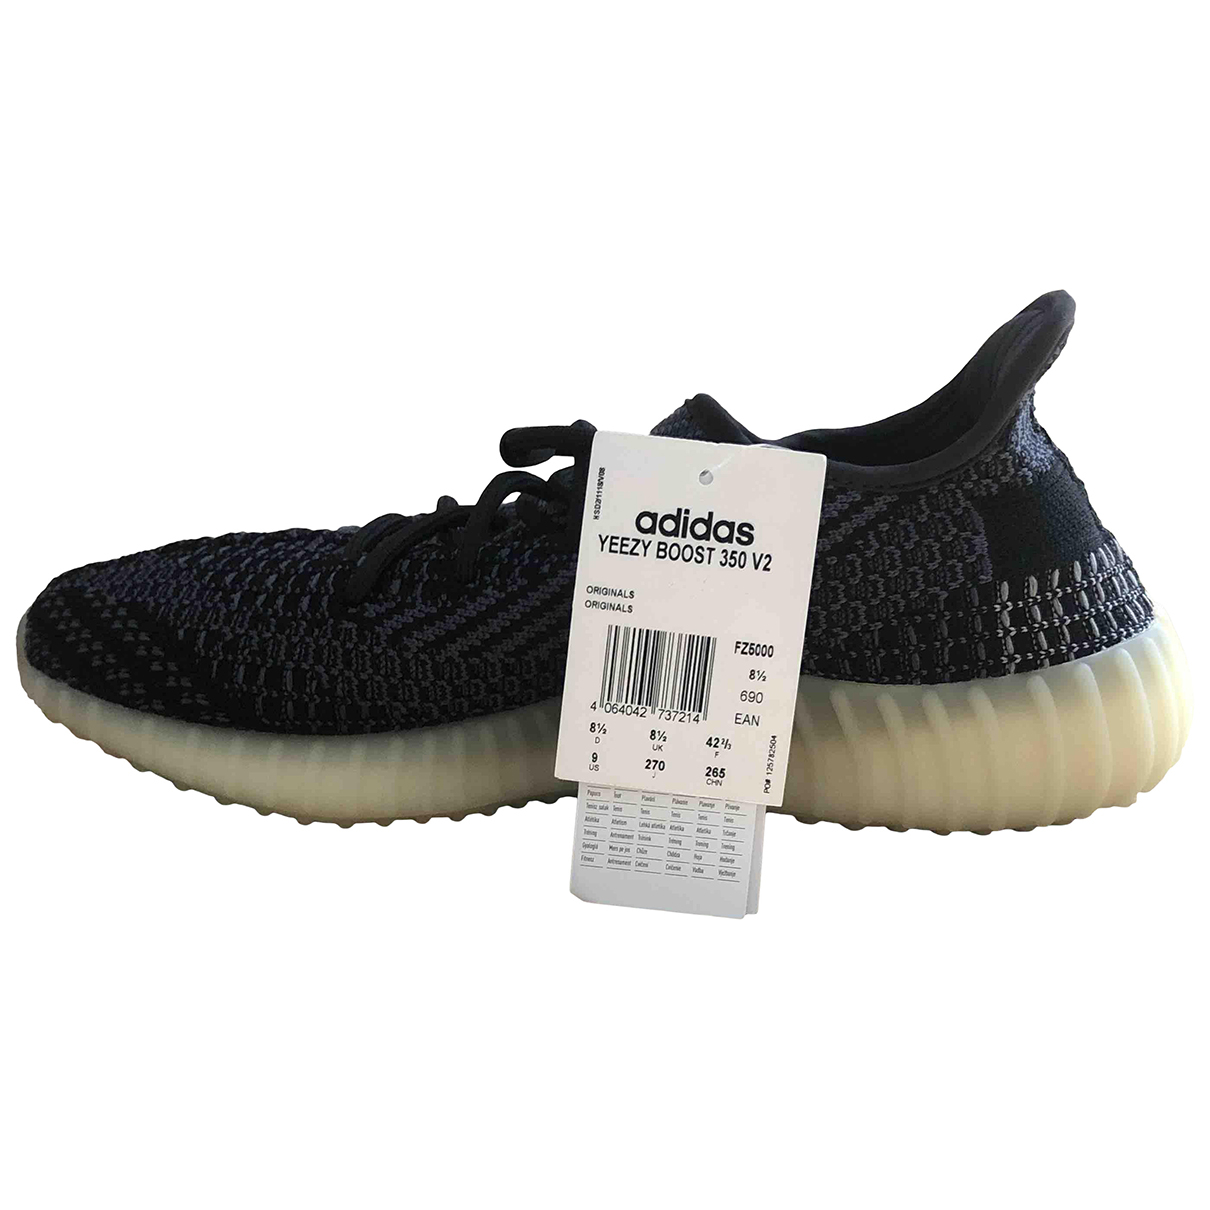 Yeezy X Adidas - Baskets Boost 350 V2 pour homme en toile - anthracite